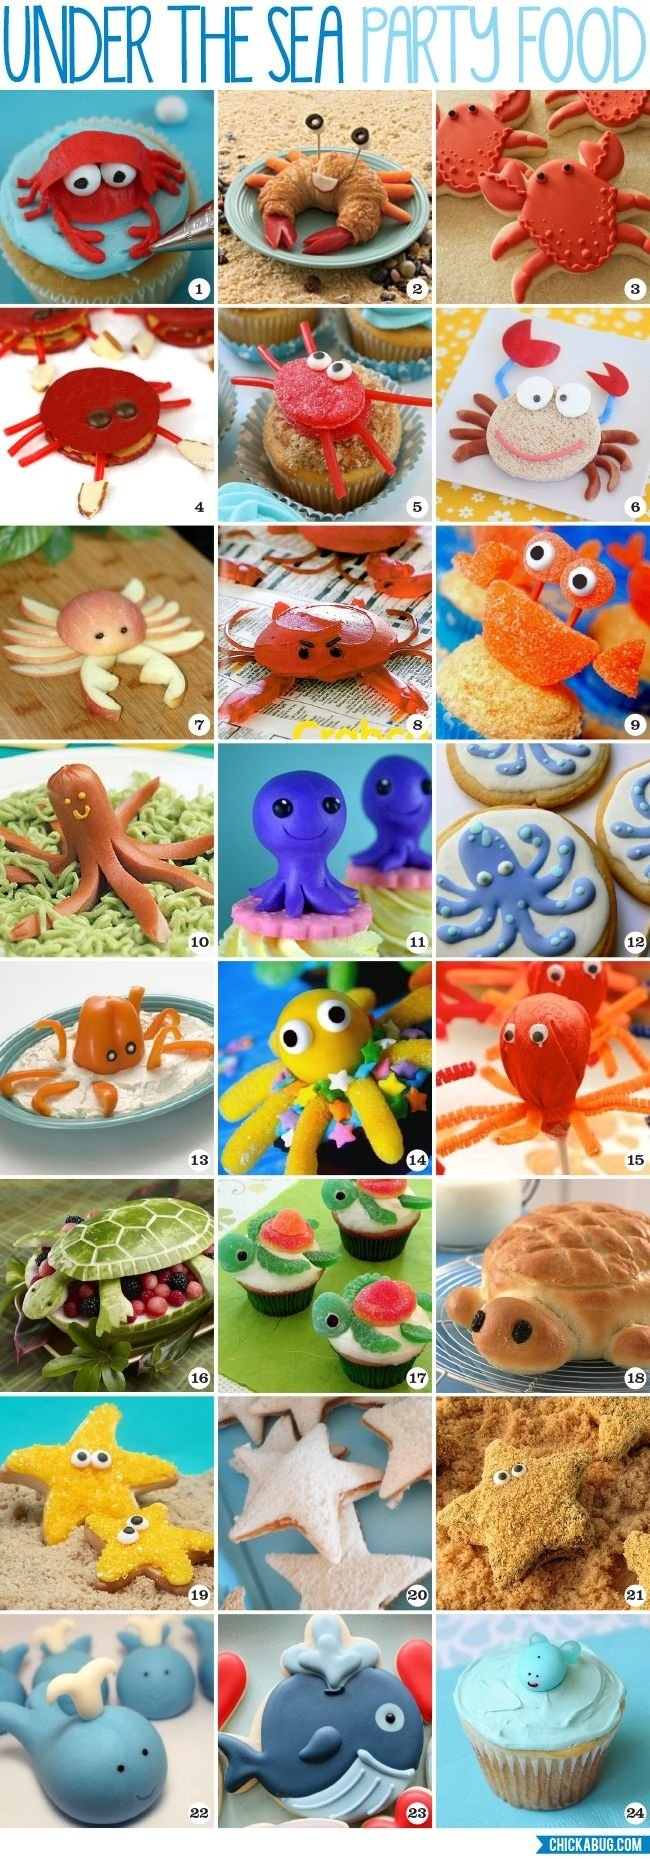 10 Beautiful Under The Sea Food Ideas under the sea party food ideas adorable recipes and tutorials 2021